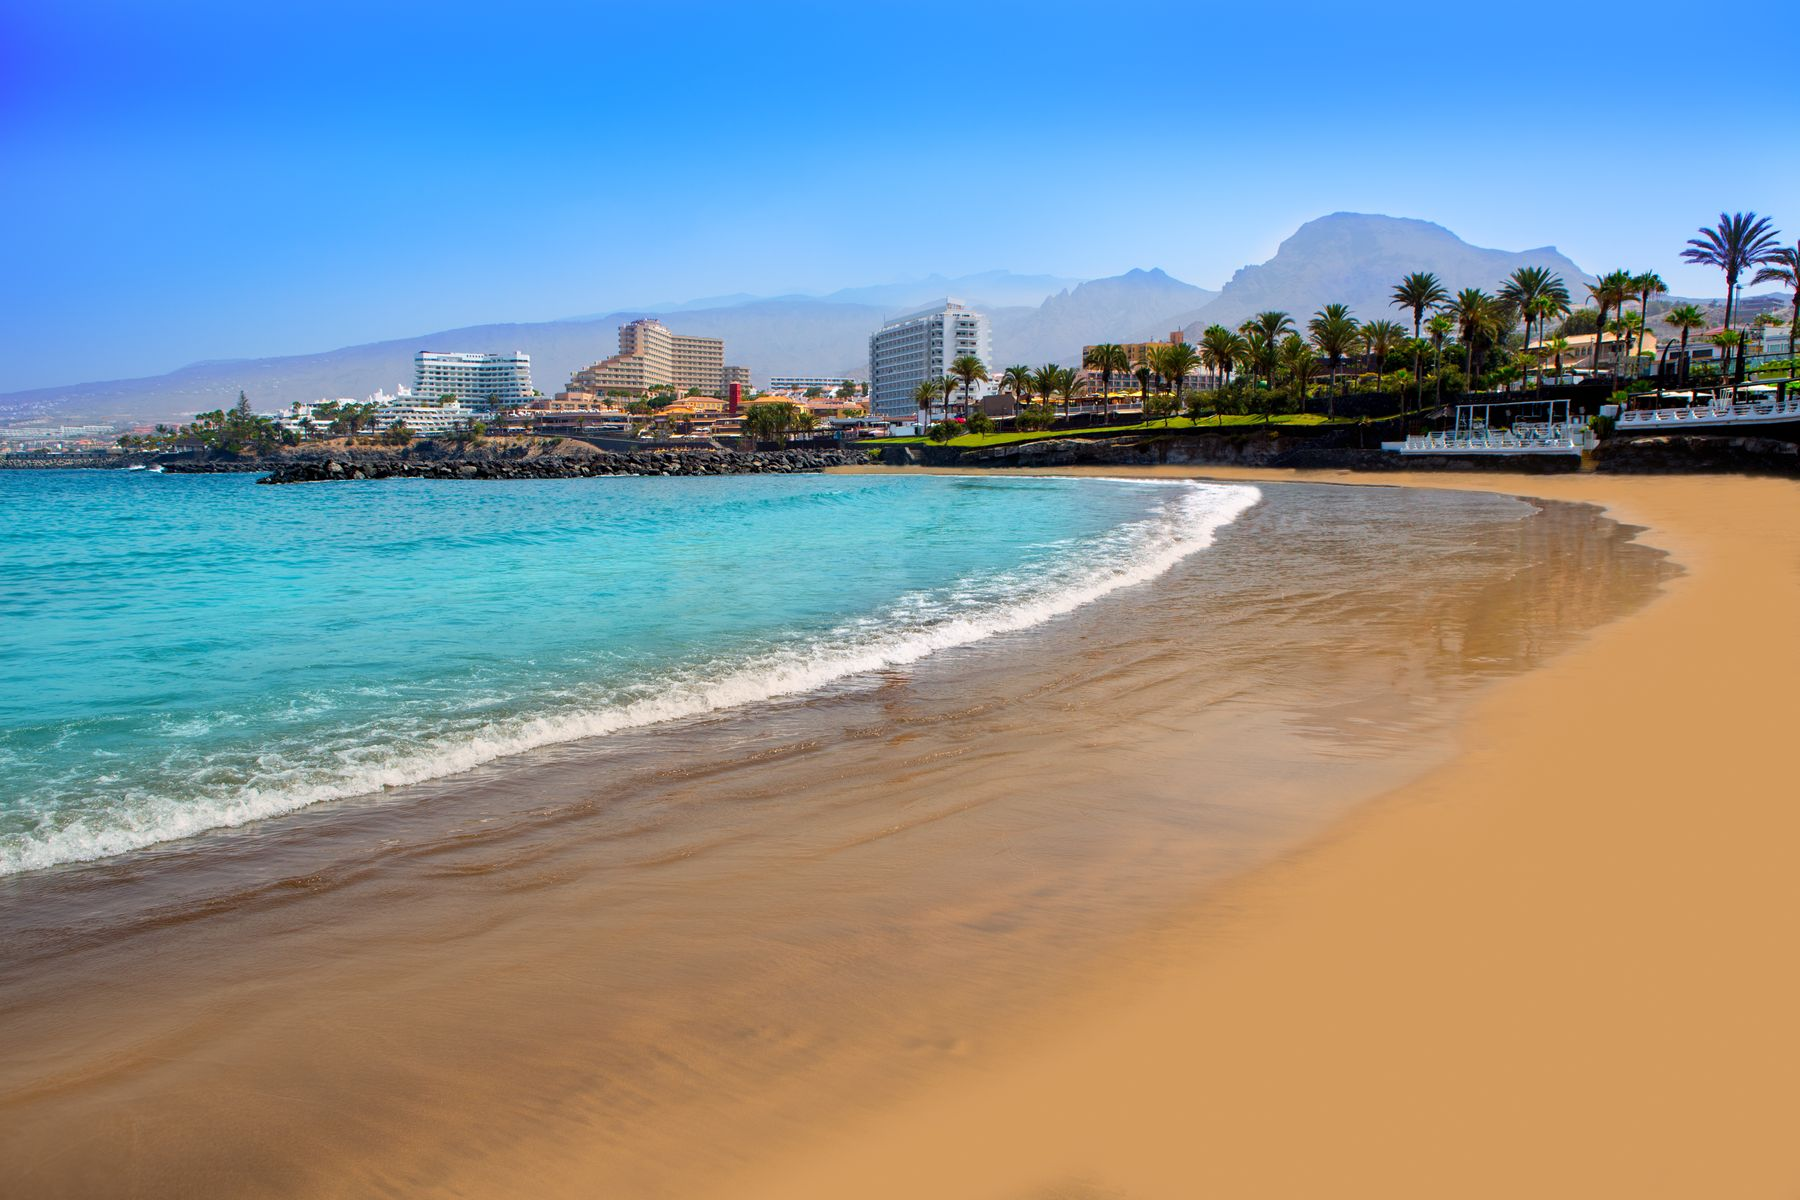 The Canary Islands is one of the best places for winter sun in Europe